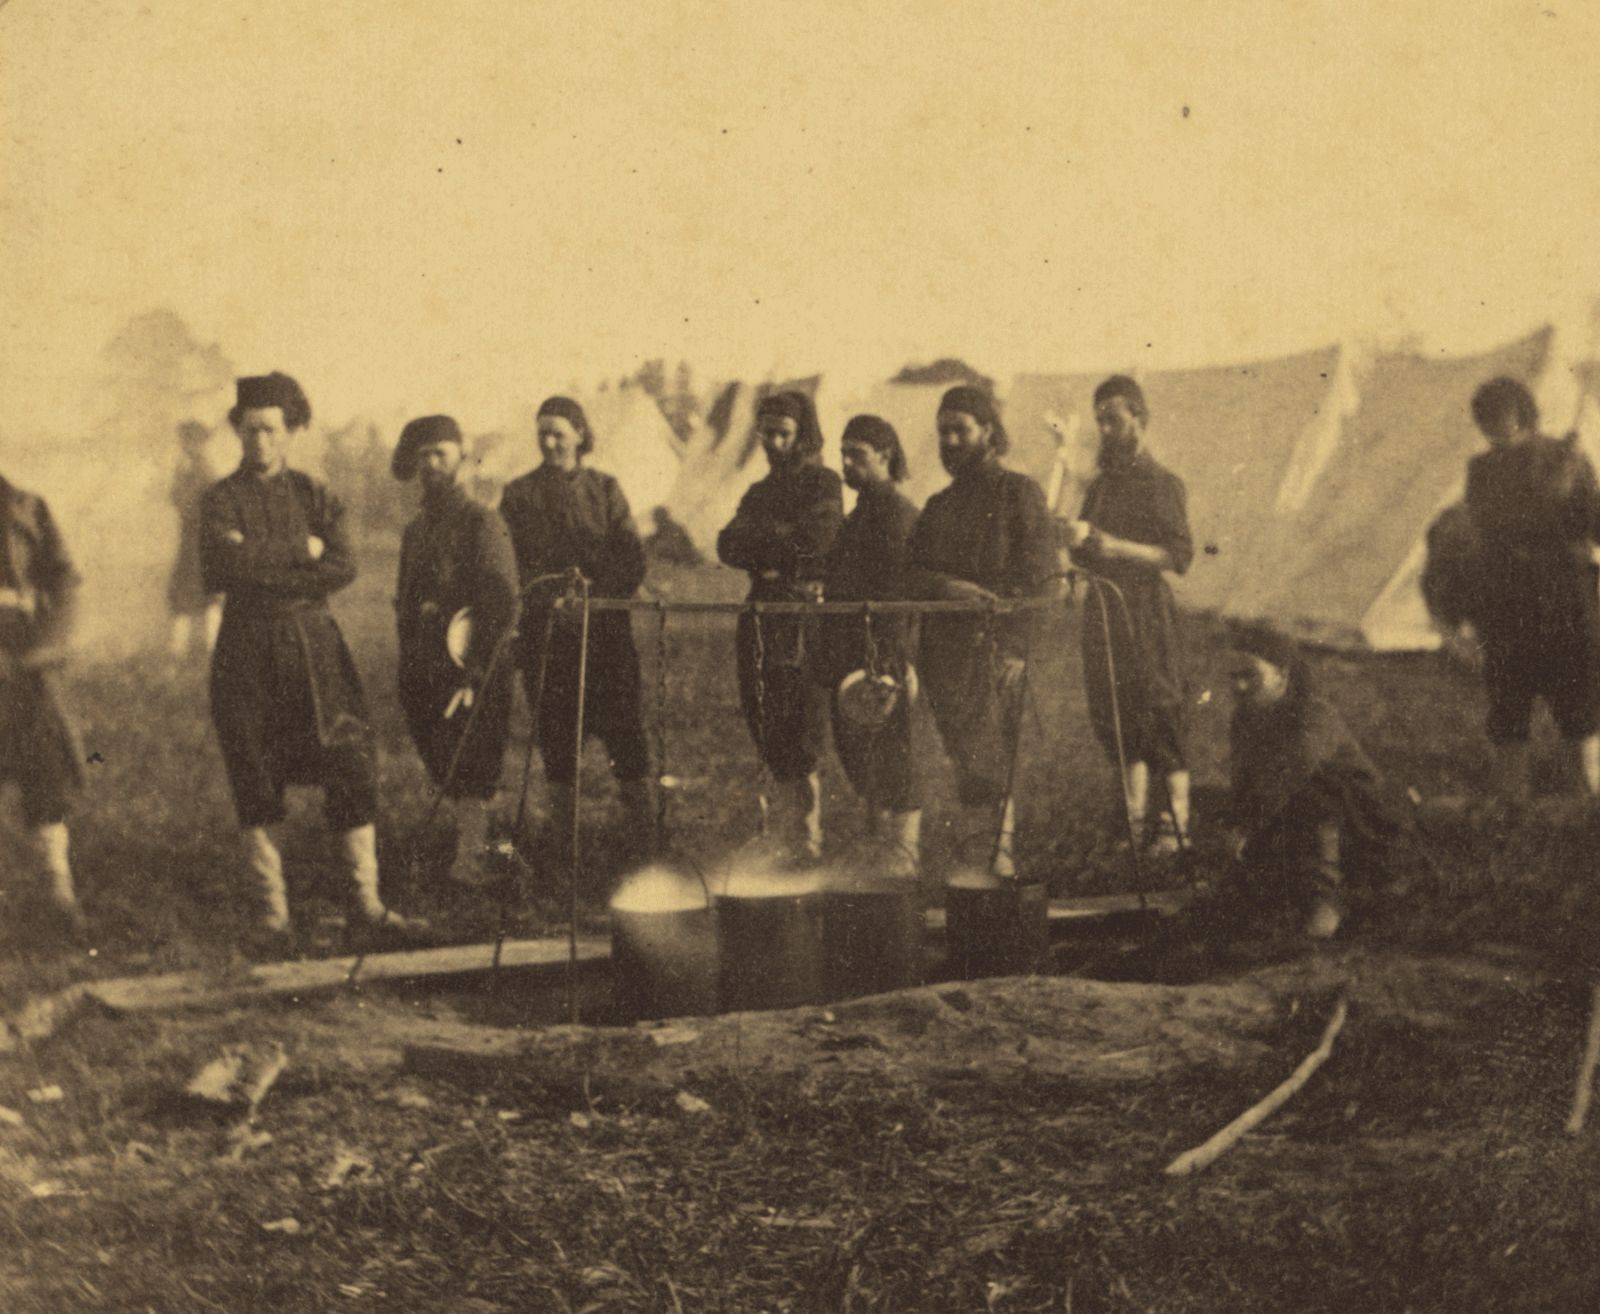 Life of a volunteer in union army in boston